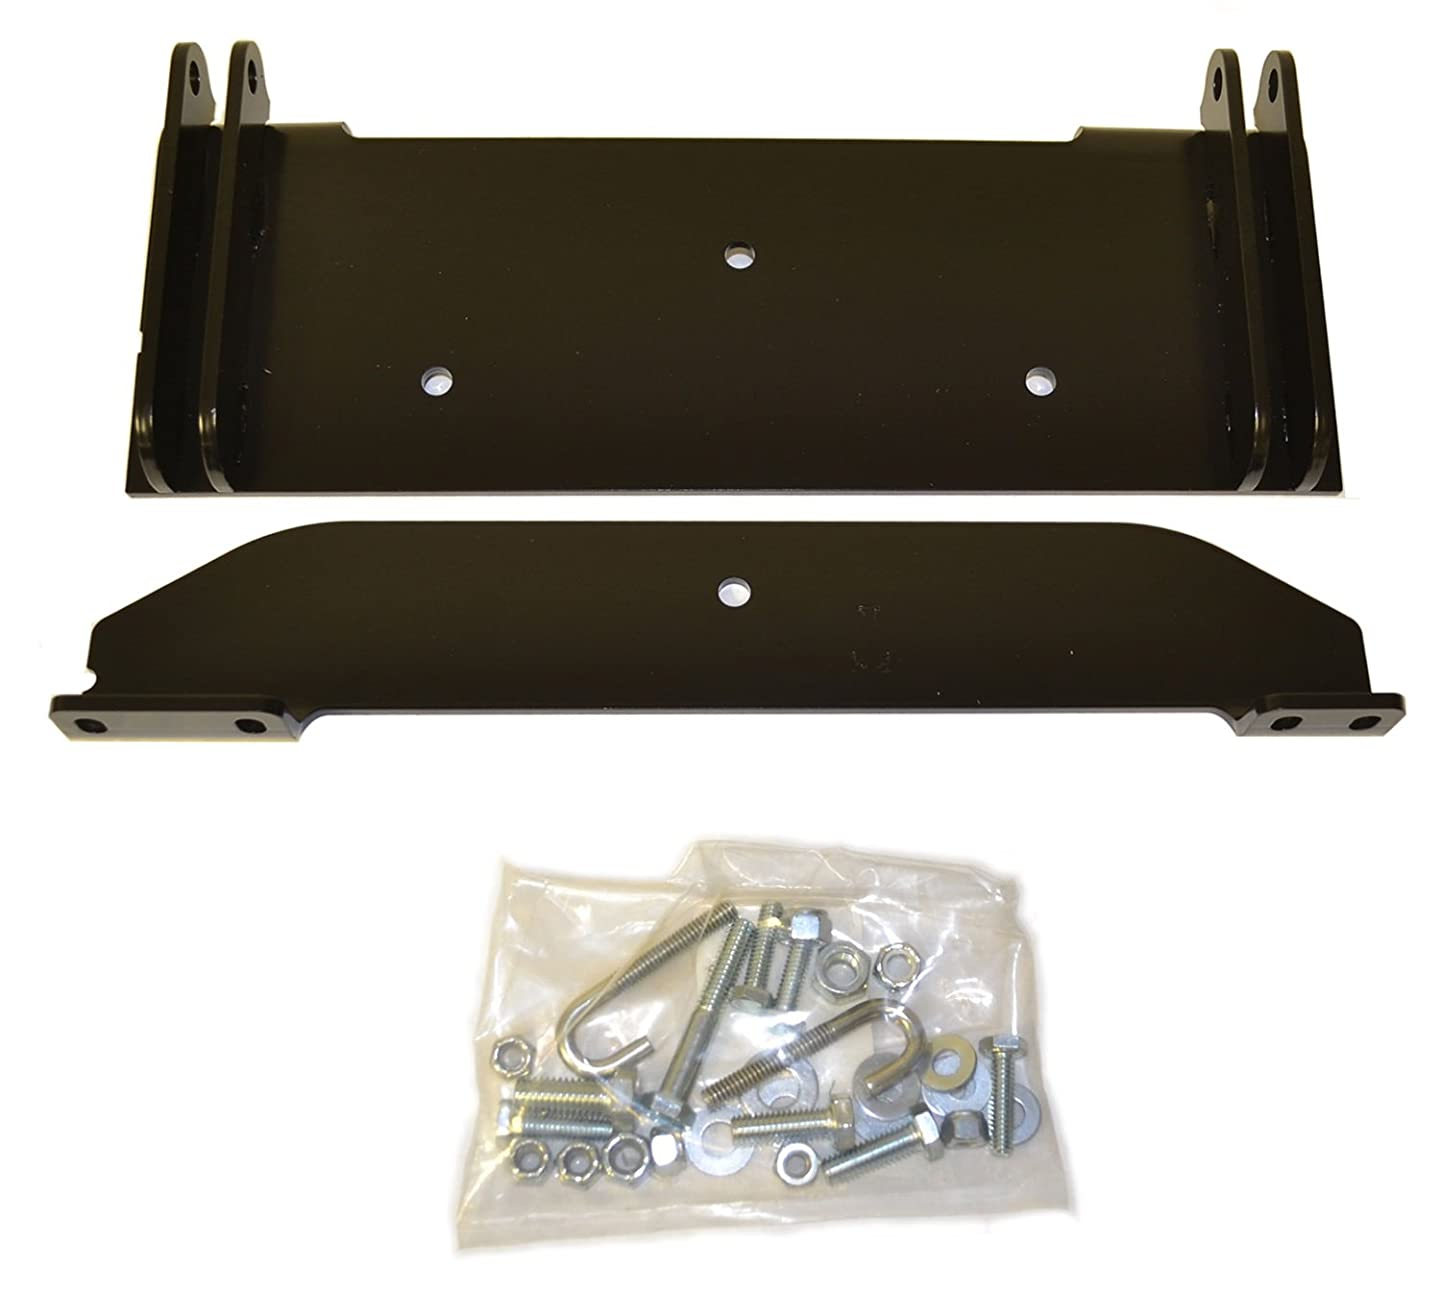 WARN 78395 ProVantage ATV Center Plow Mount Kit